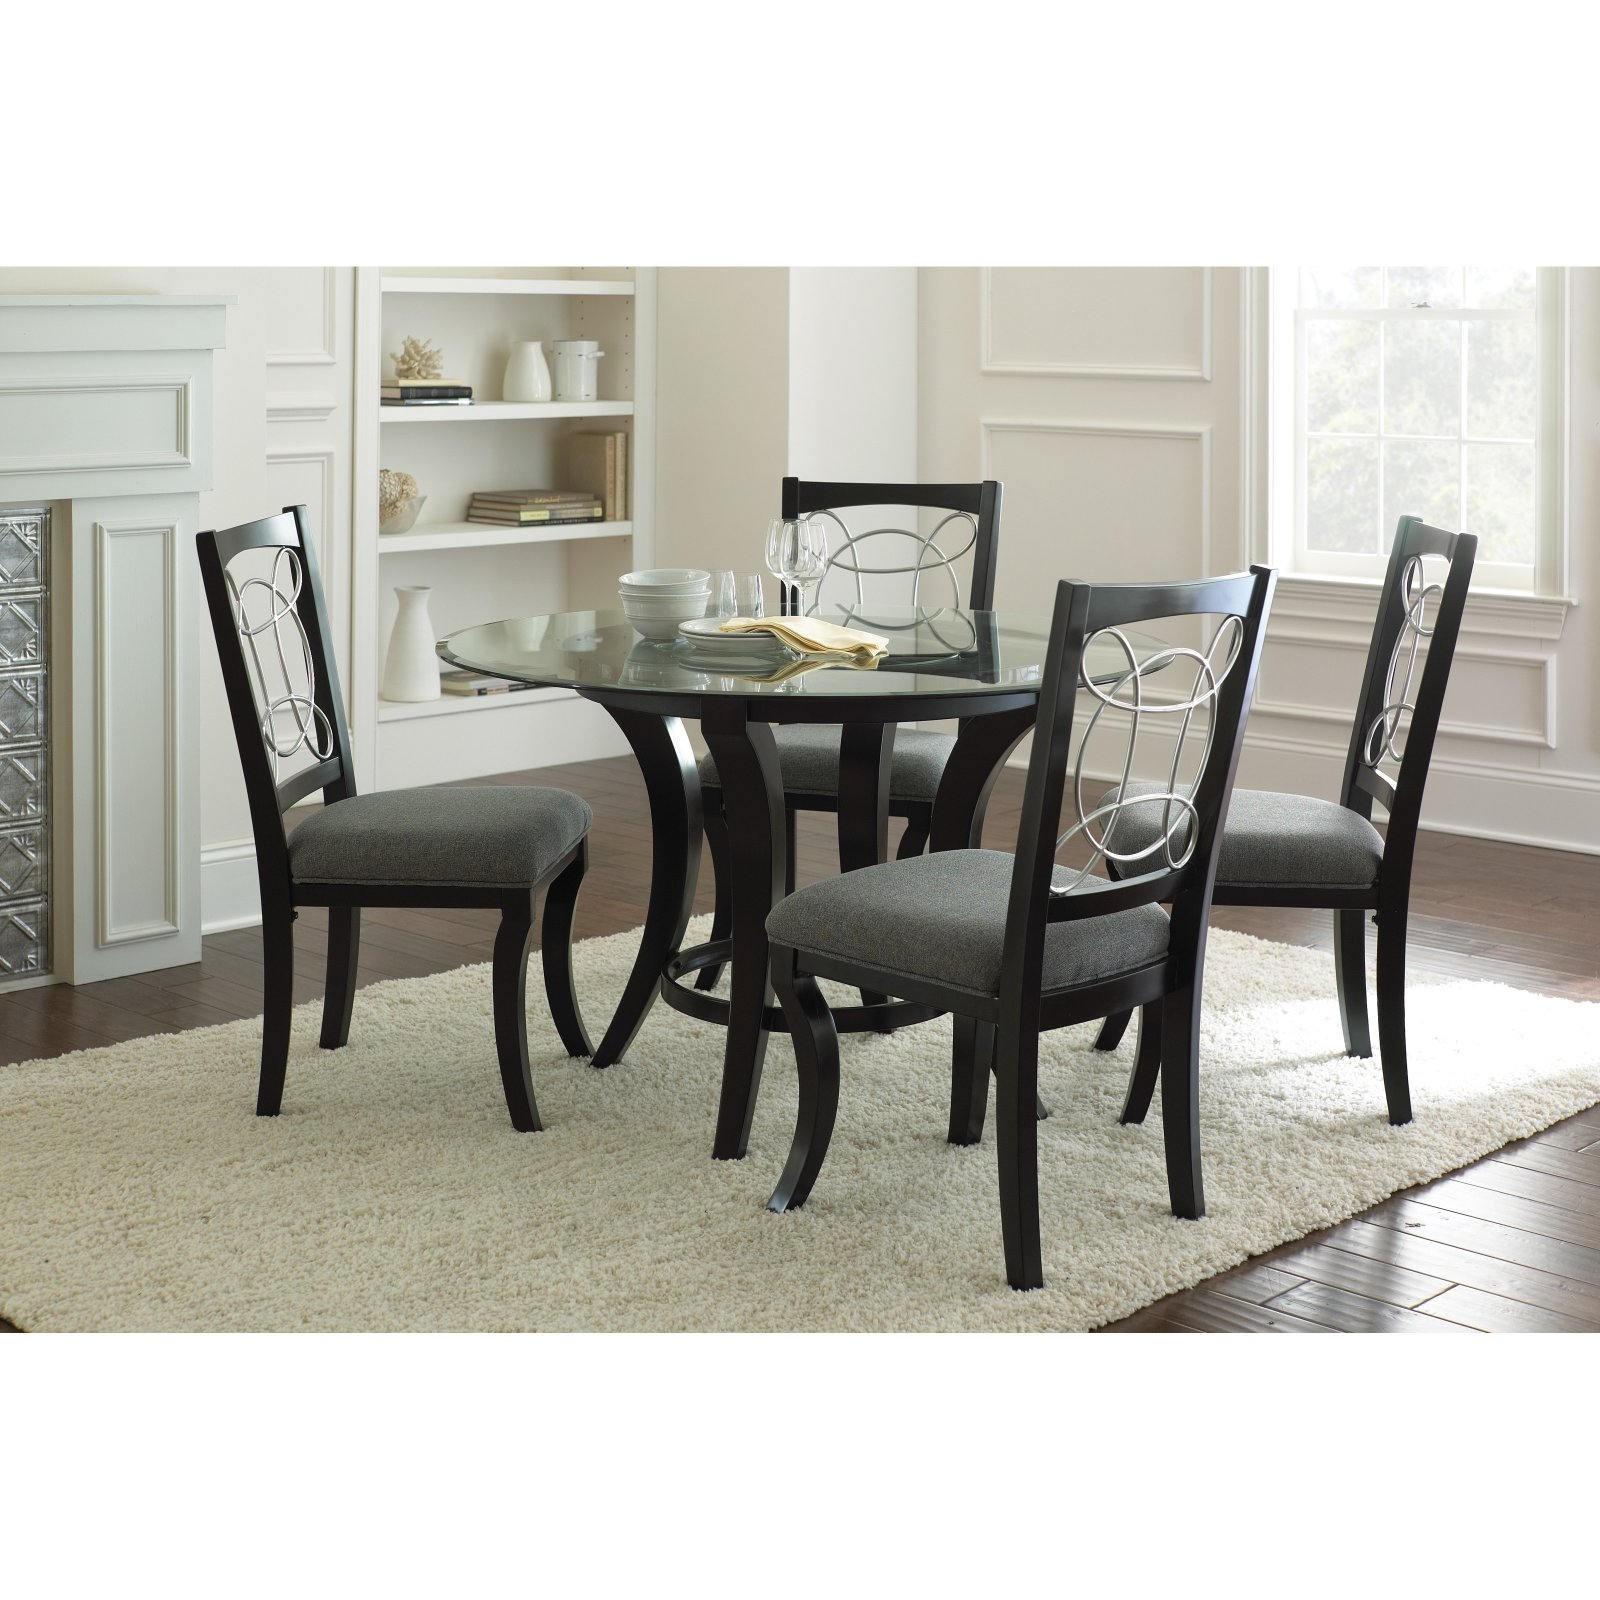 Steve Silver Cayman Glass Top Dining Table - Black